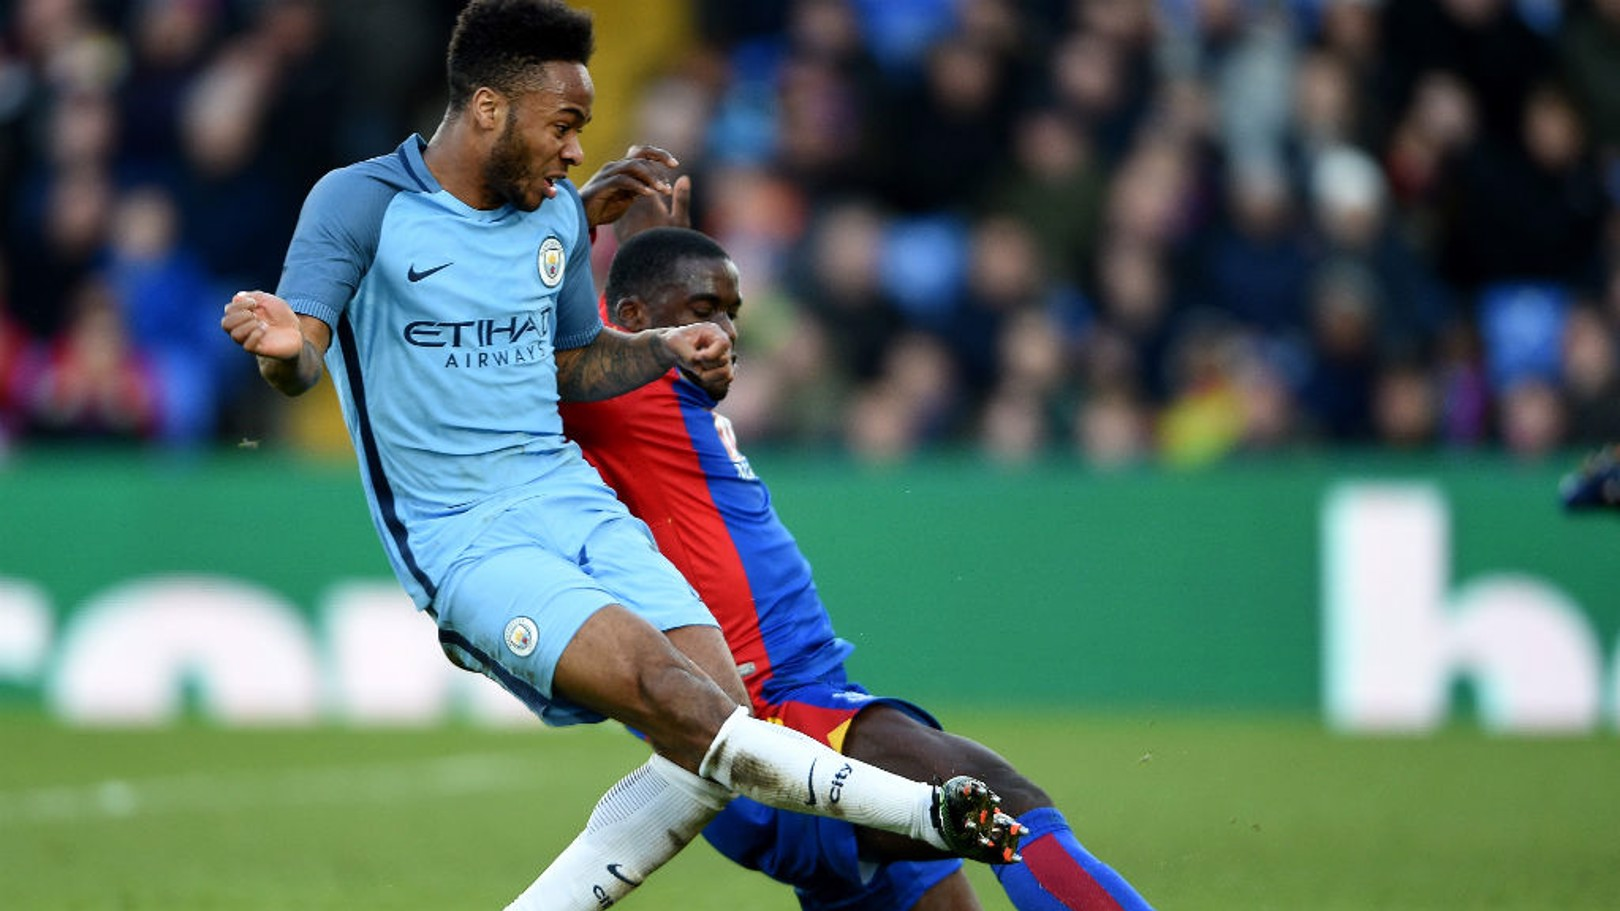 BREAKTHROUGH: Raheem Sterling keeps his nerve to score